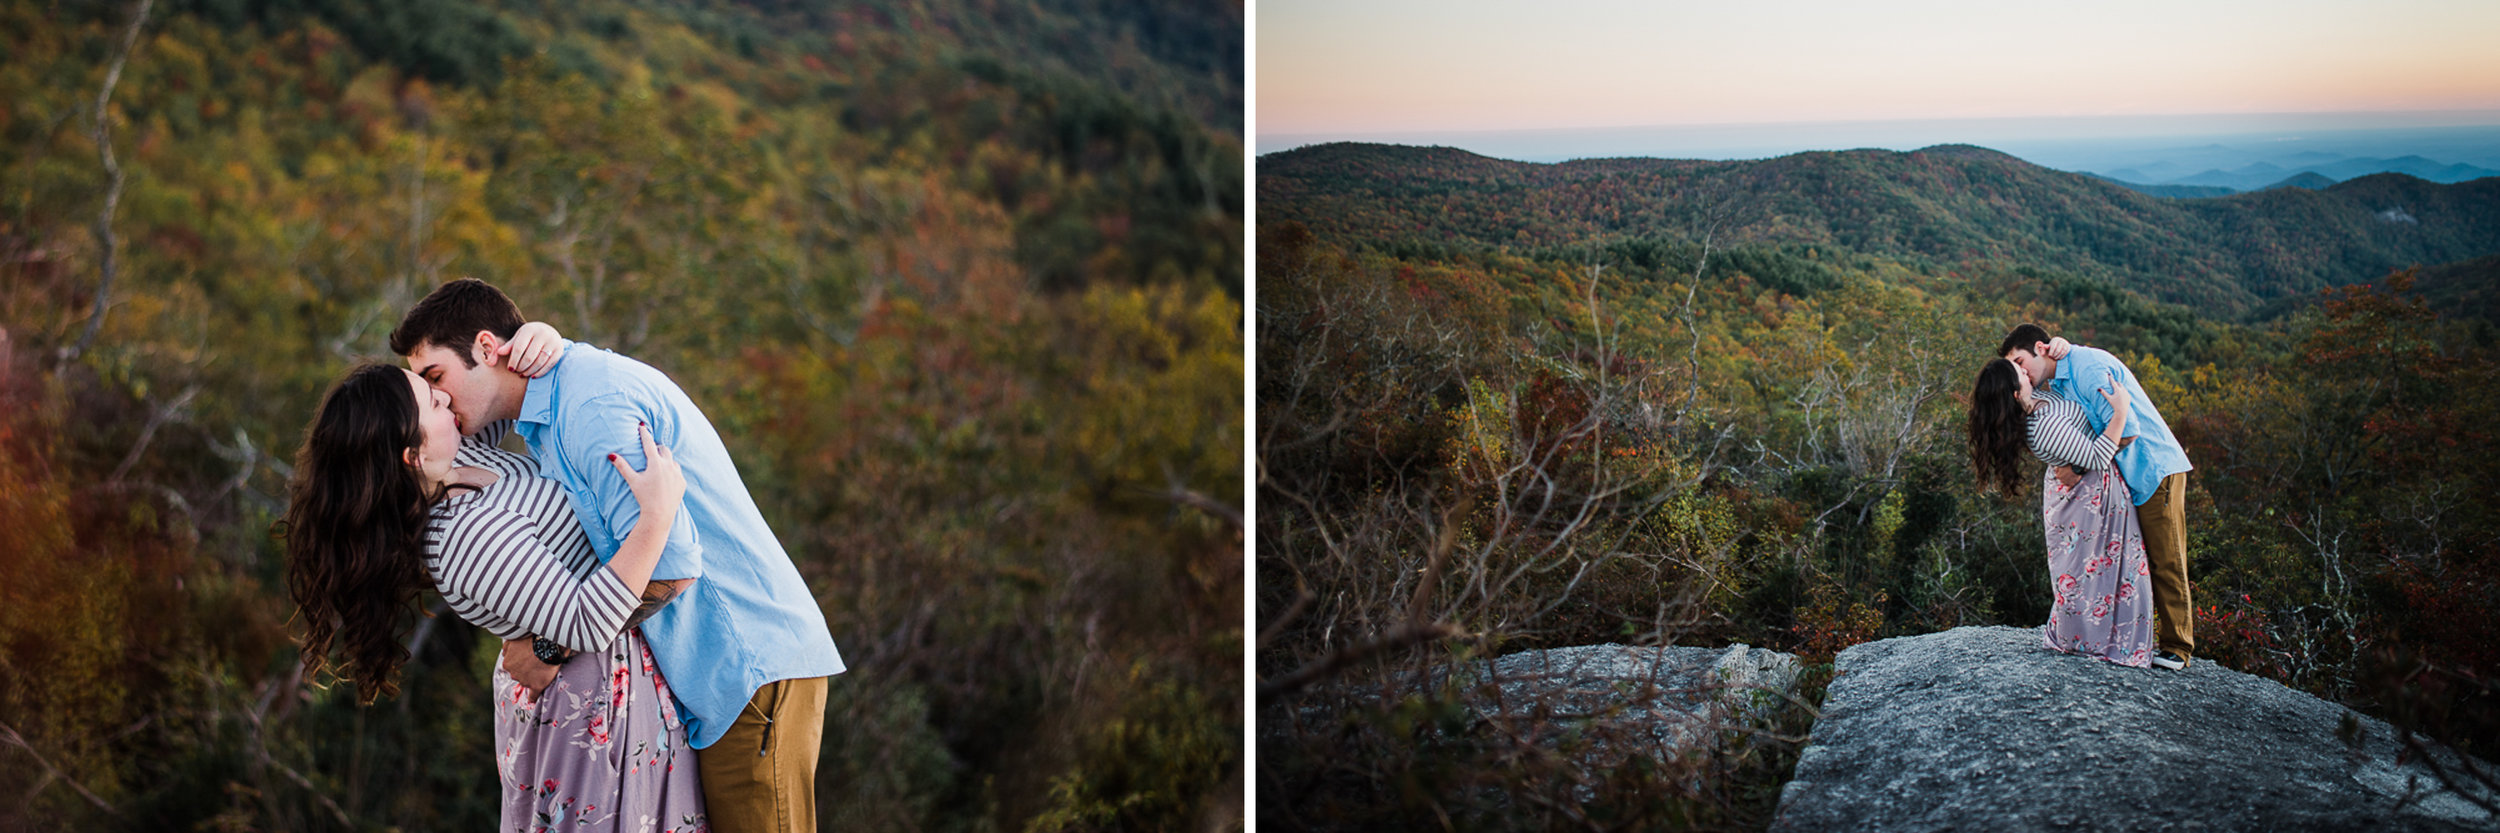 Mountain Engagement Portraits, Fall Engagement Photos, Engaged, 24.jpg